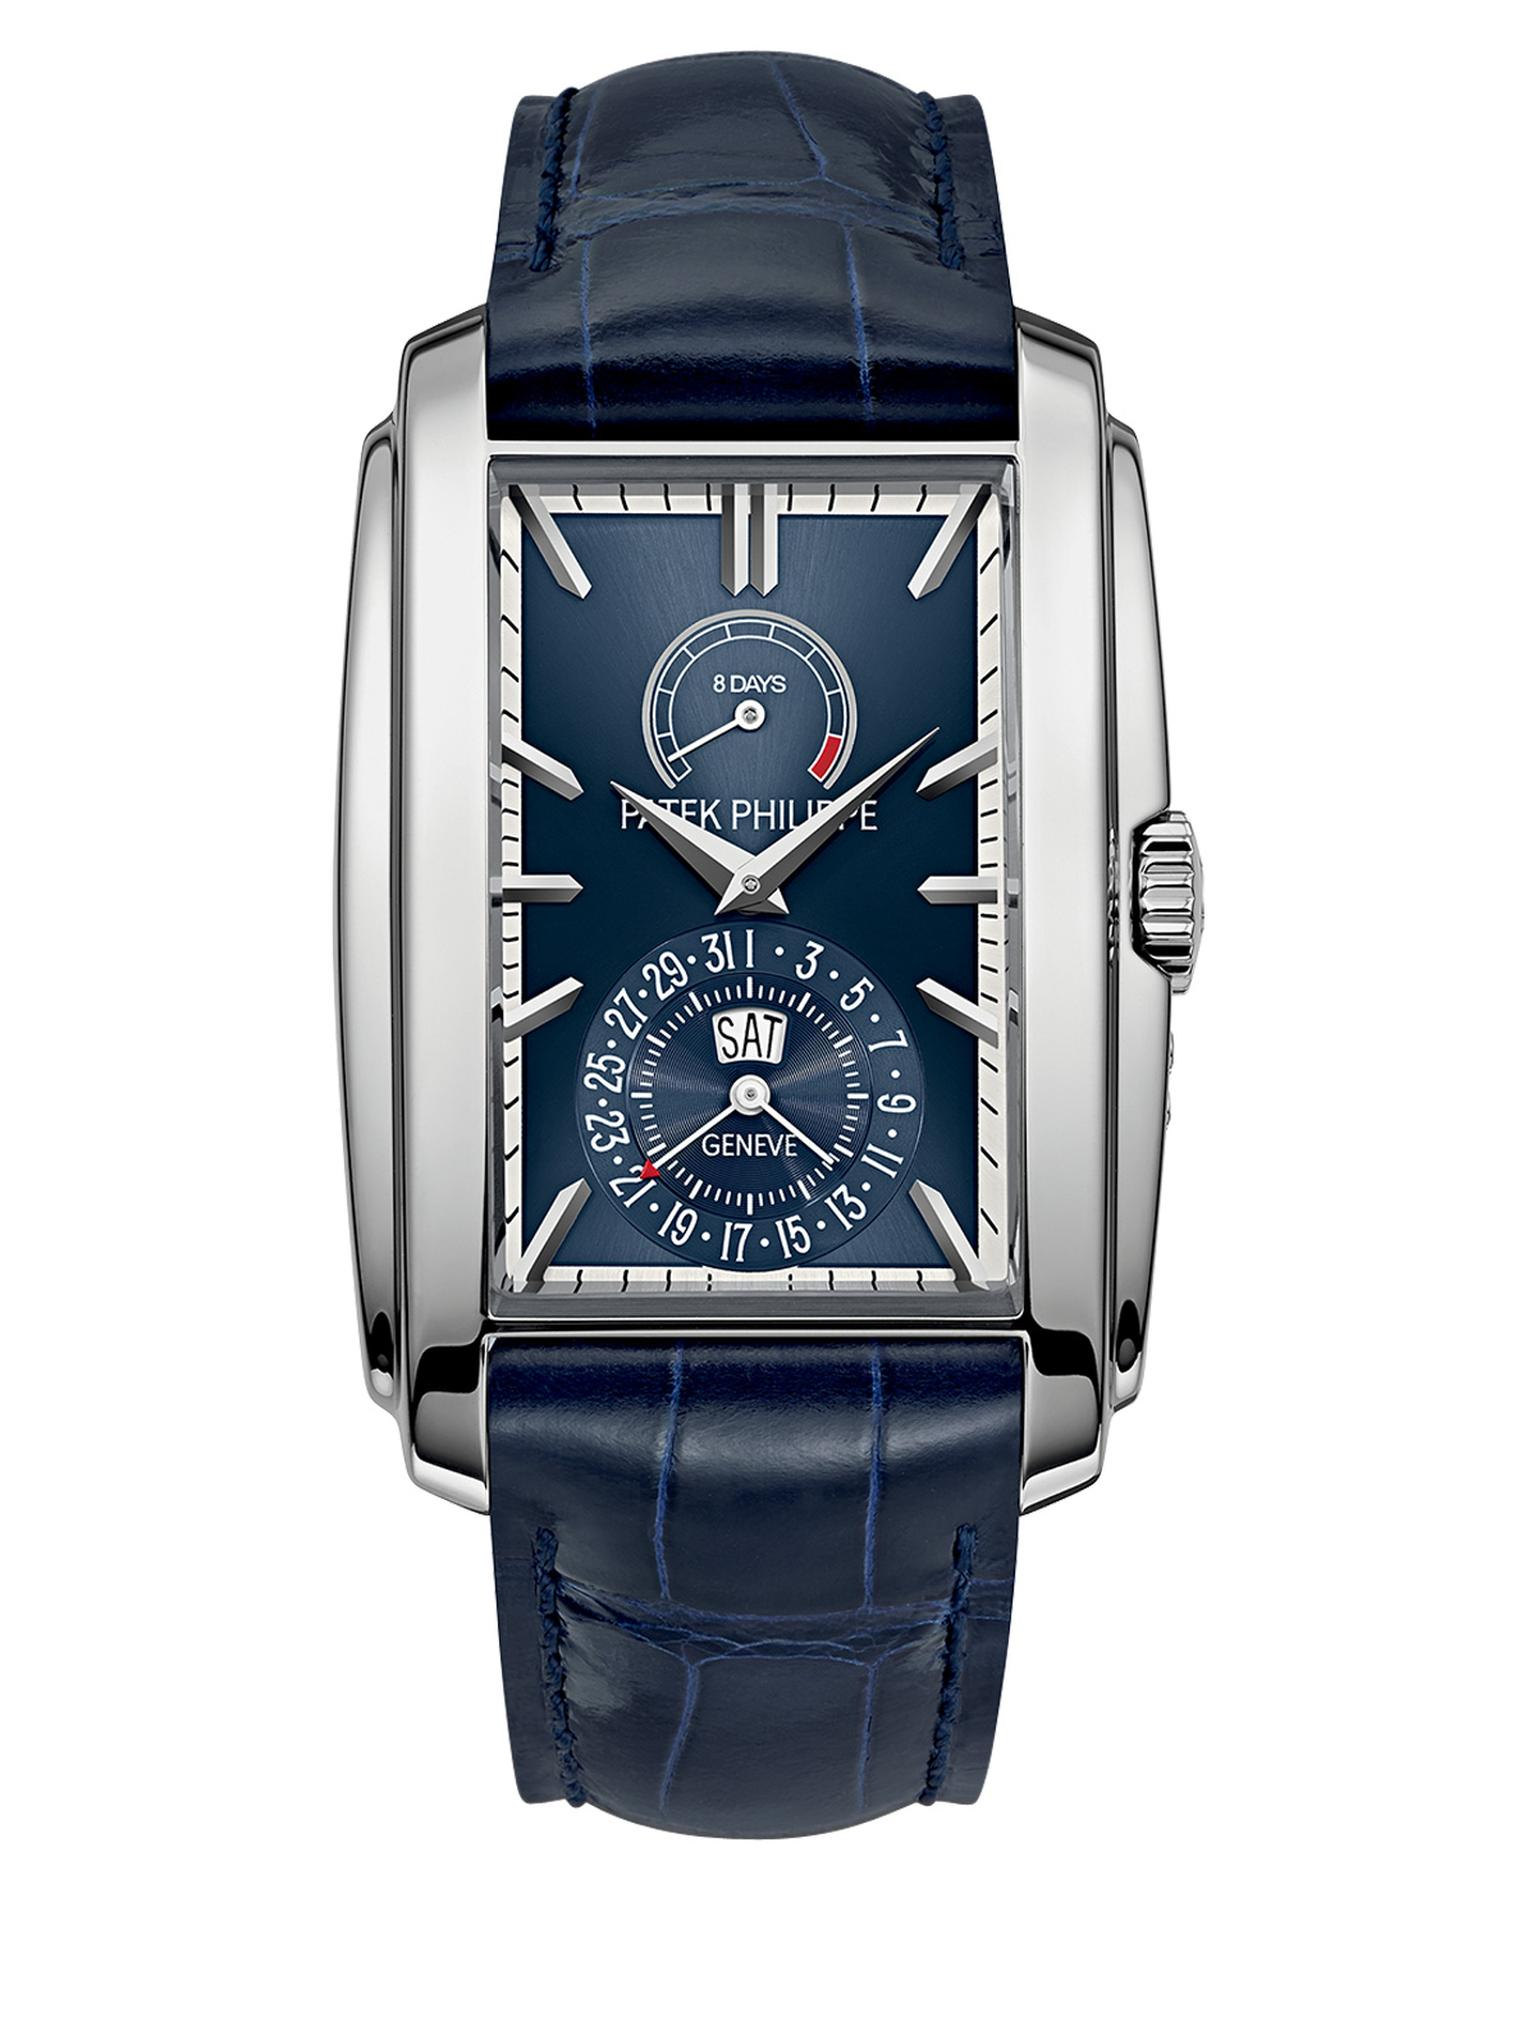 Patek Philippe Gondolo Ref 5200 8 Days, Day & Date Indication_20130711_Zoom